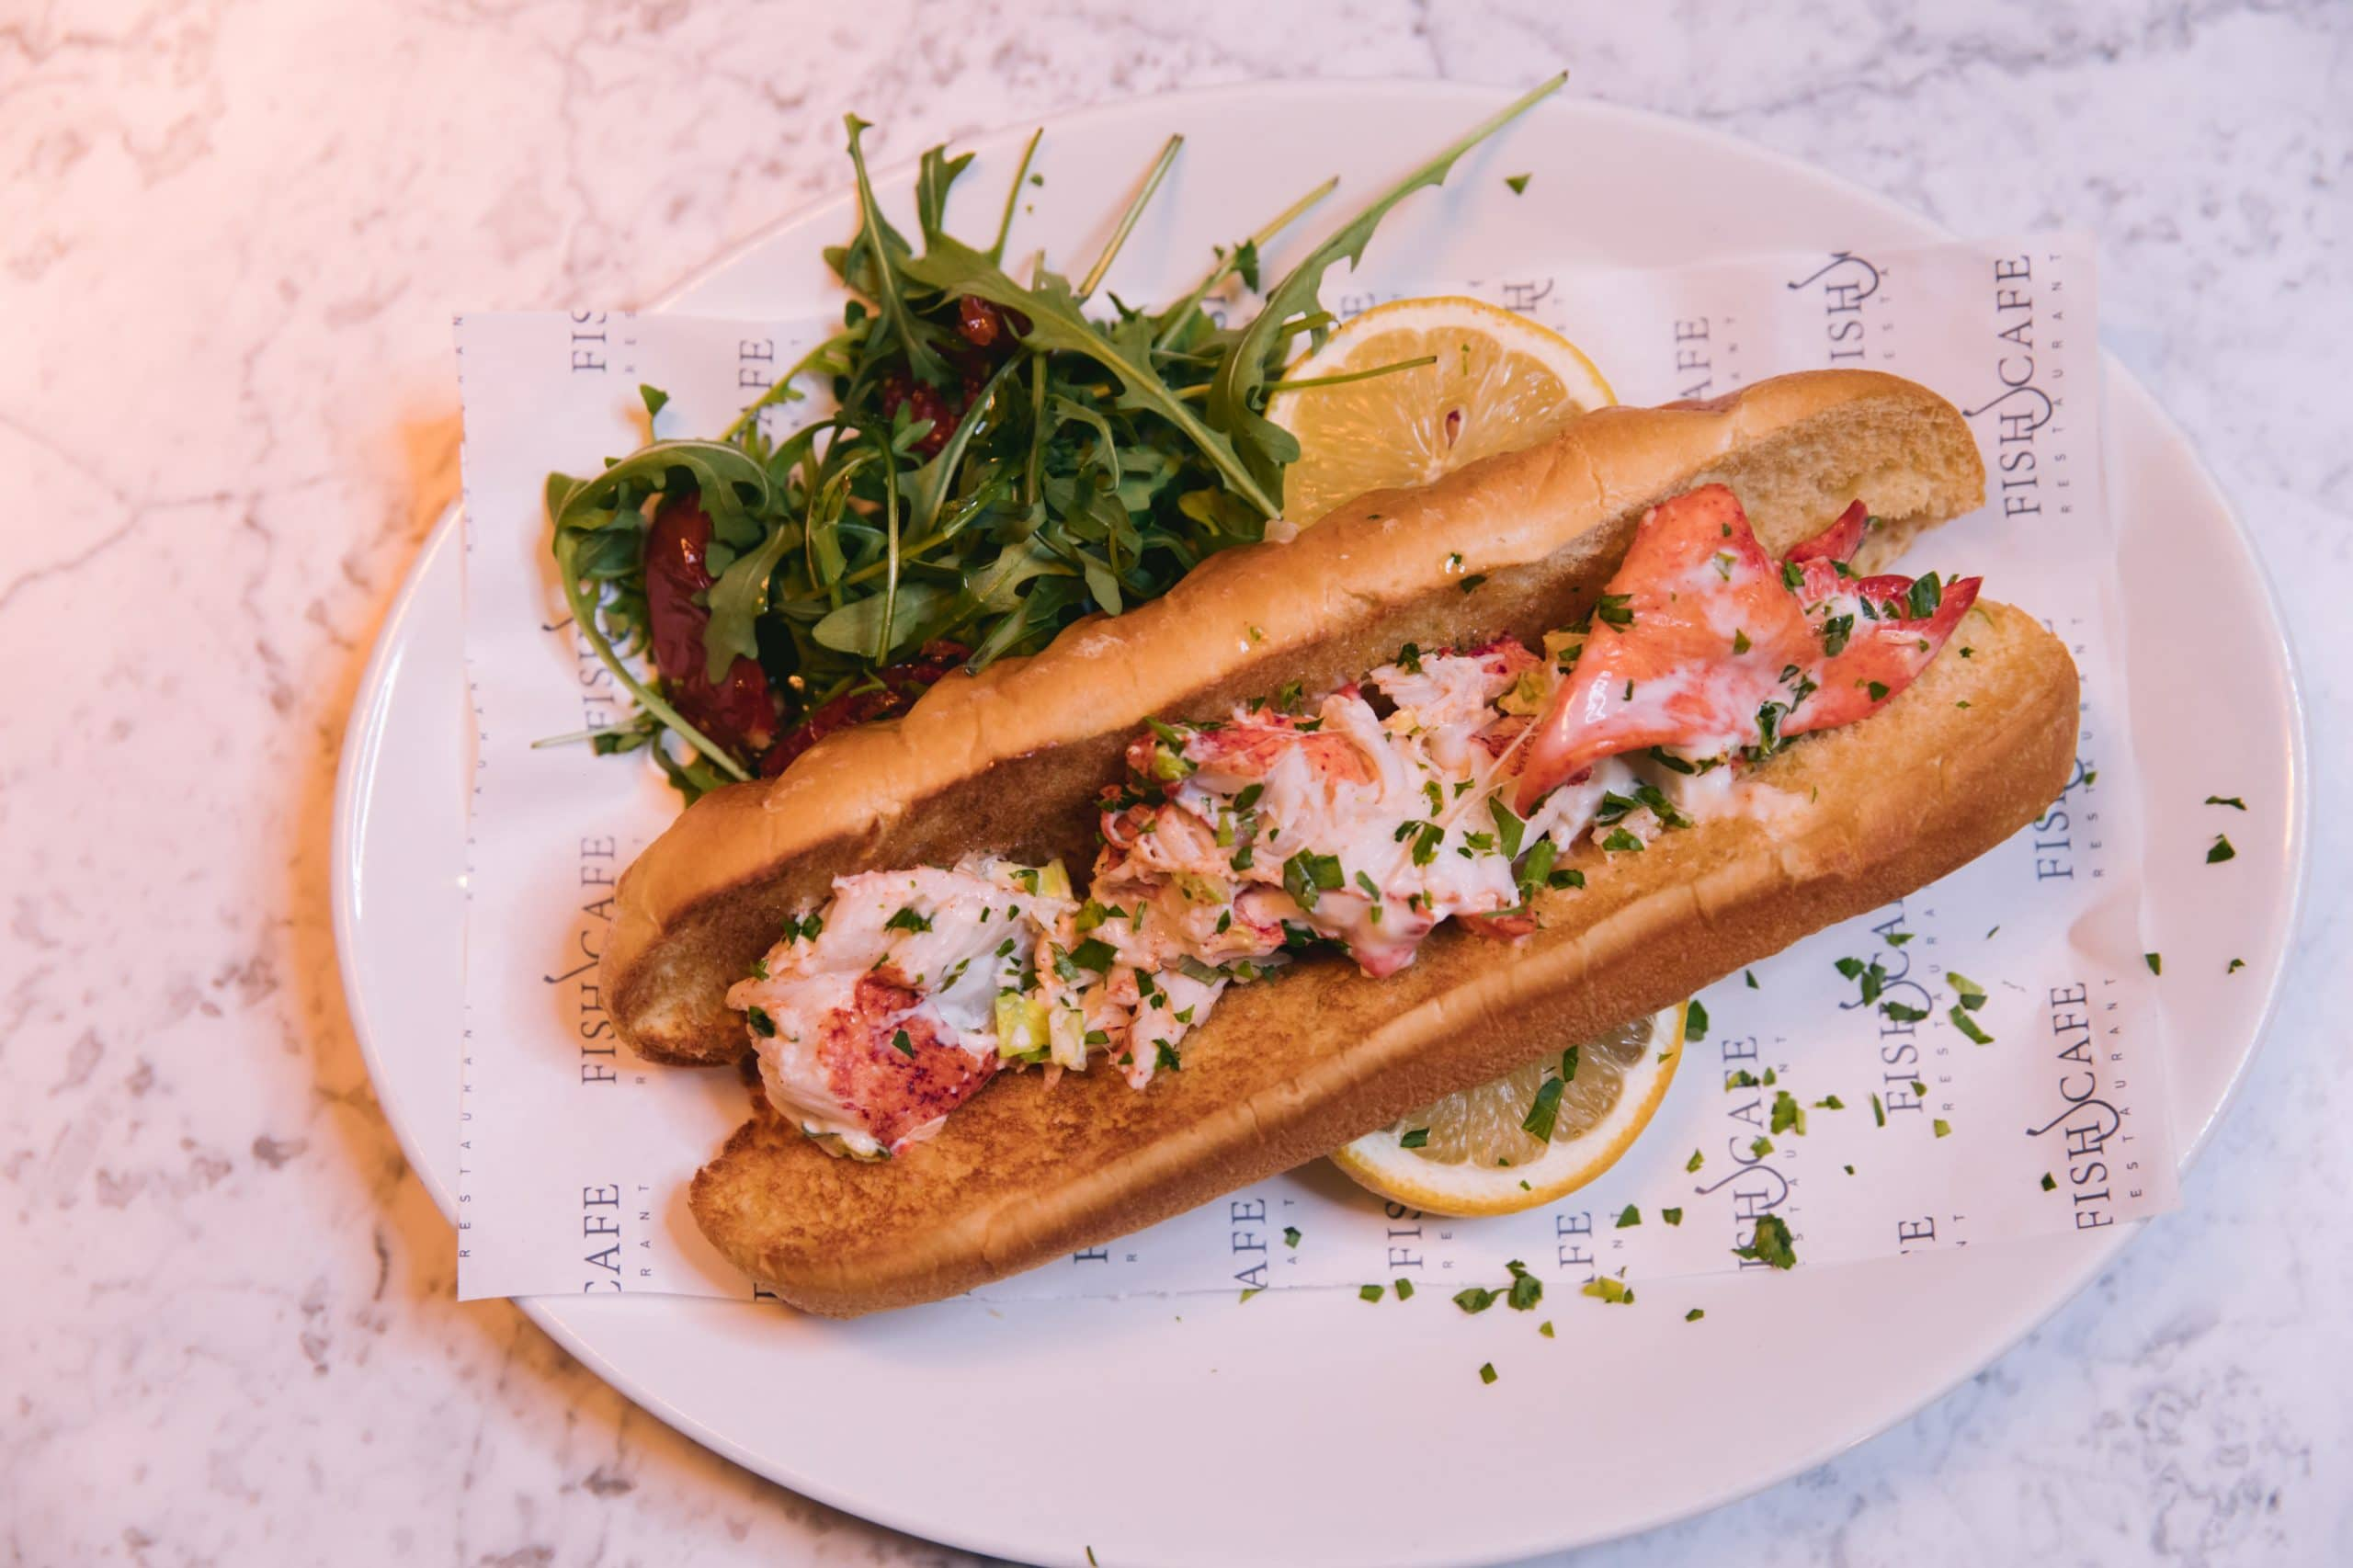 Food Photography for Fishcafe Hampstead